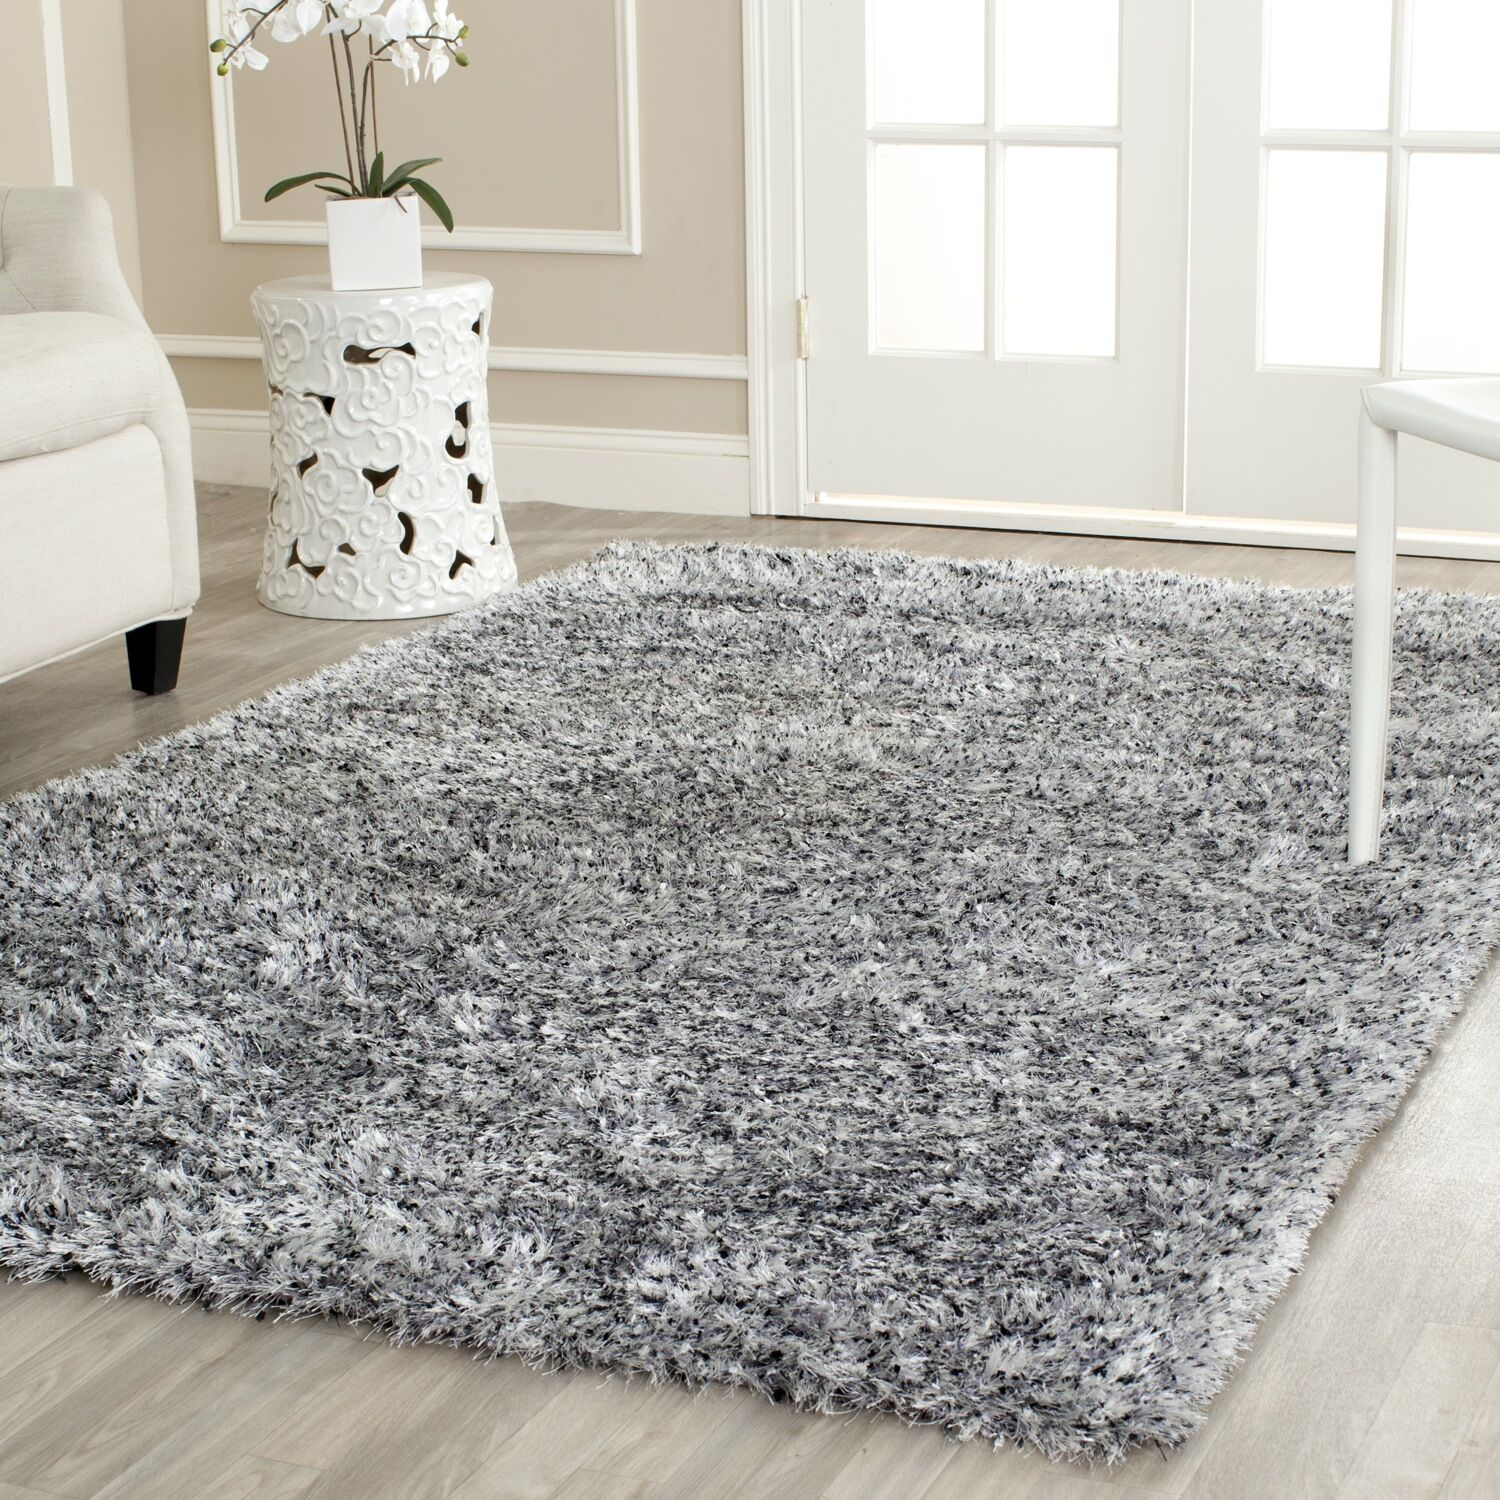 Kenneth Hand-Tufted Gray/Black Area Rug Rug Size: Rectangle 3' x 5'